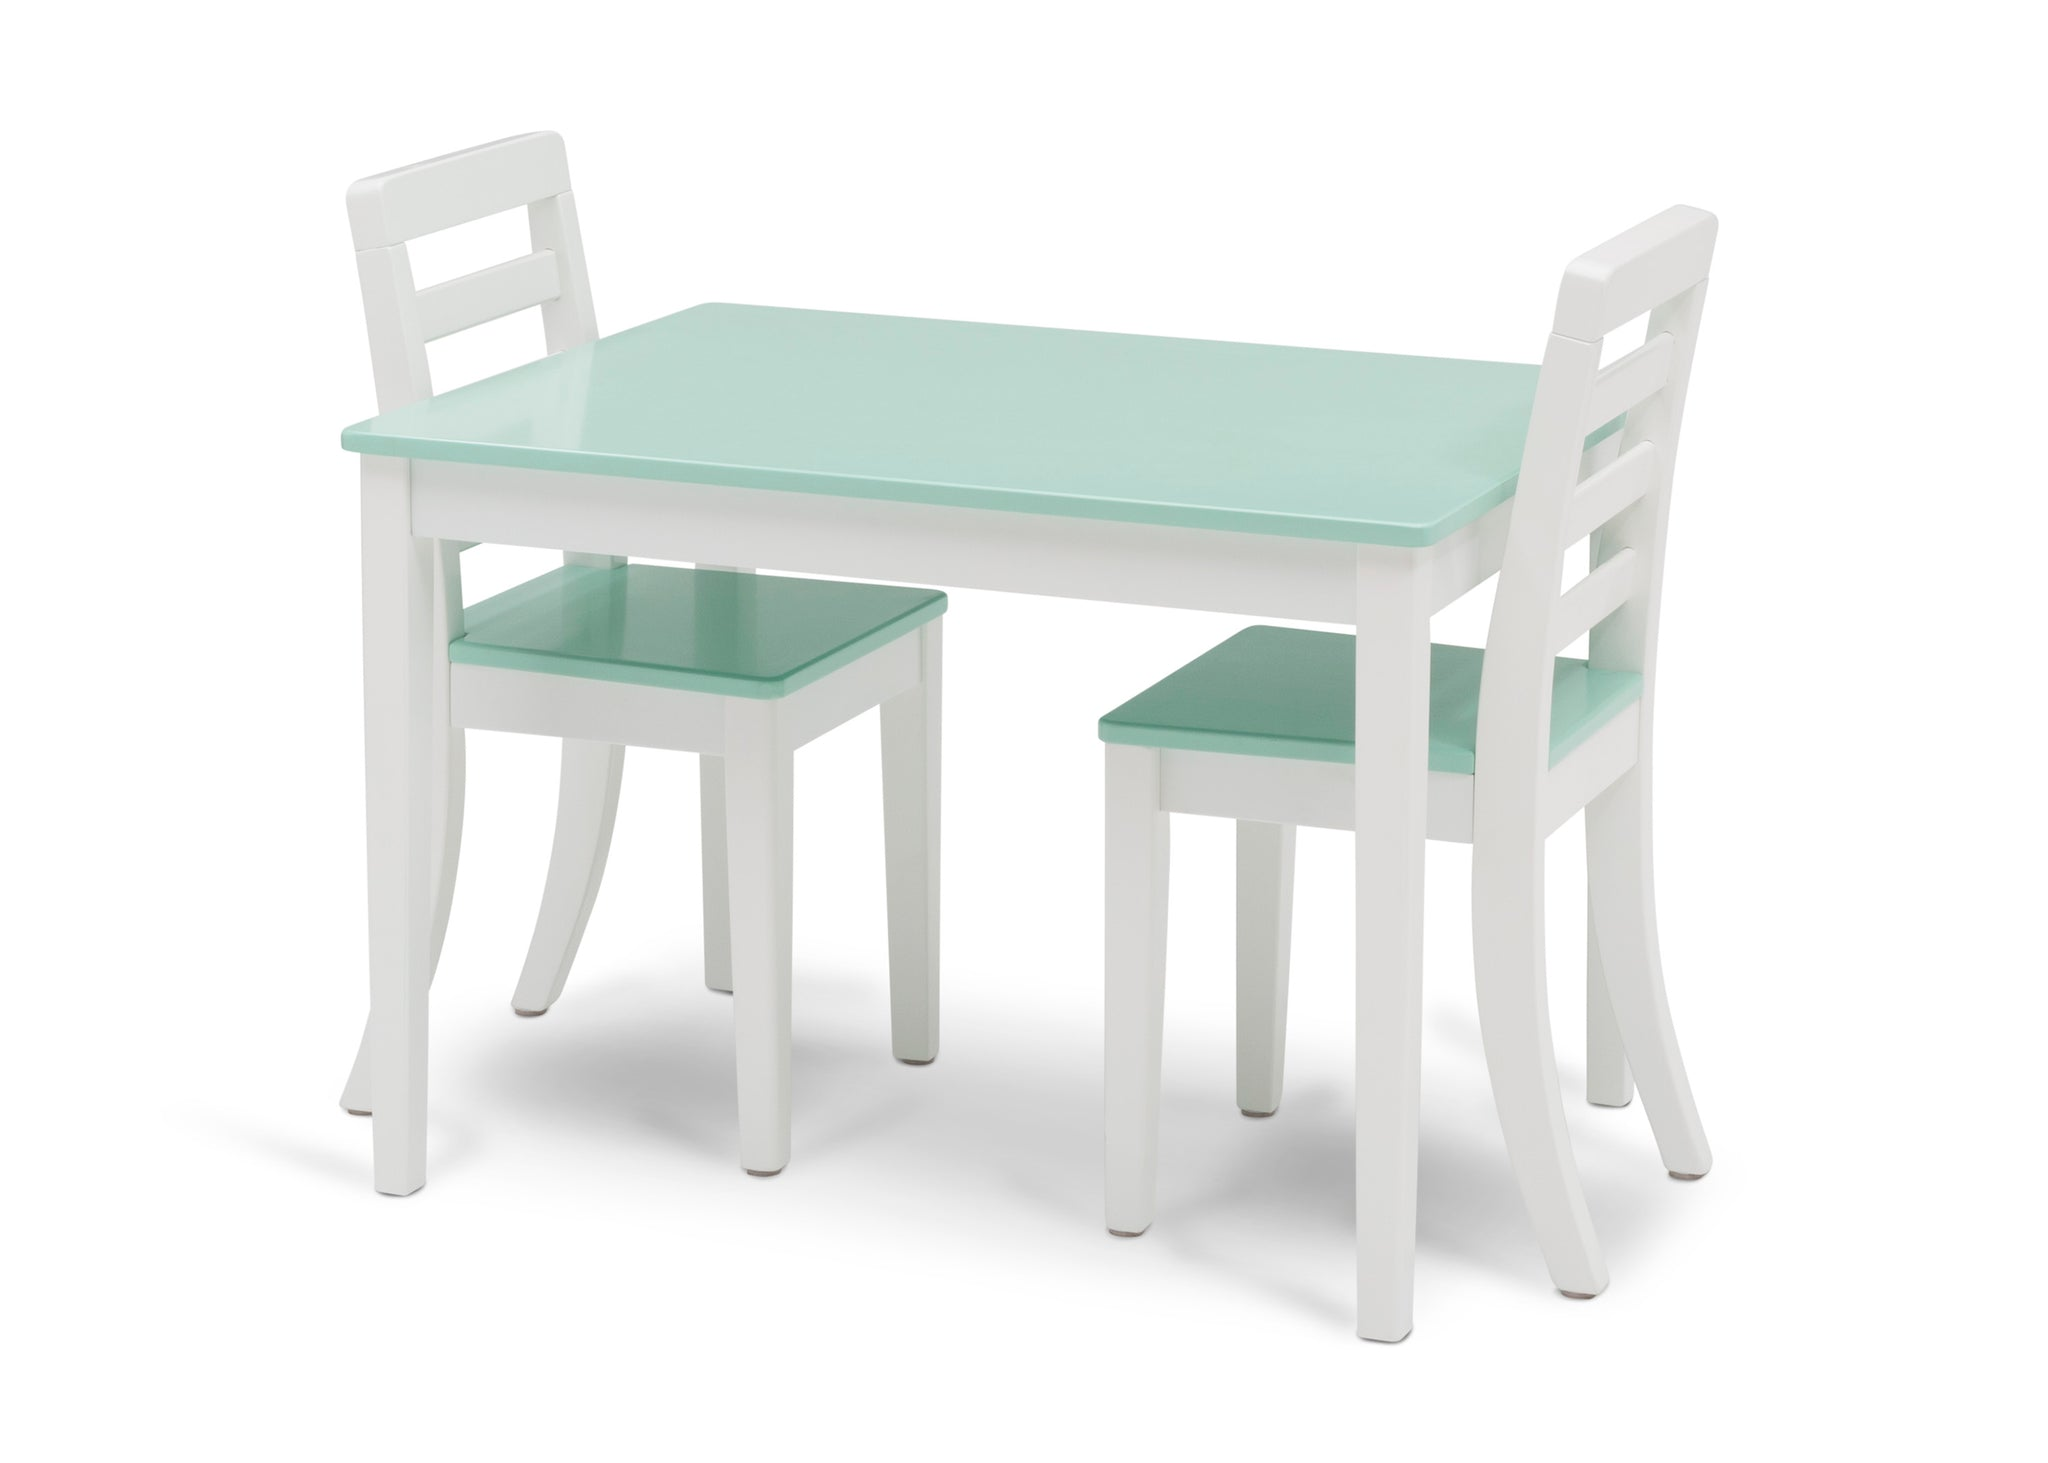 Delta Children Bianca with Aqua (134) Gateway Table & 2 Chair Set, Left Silo with Chairs In View